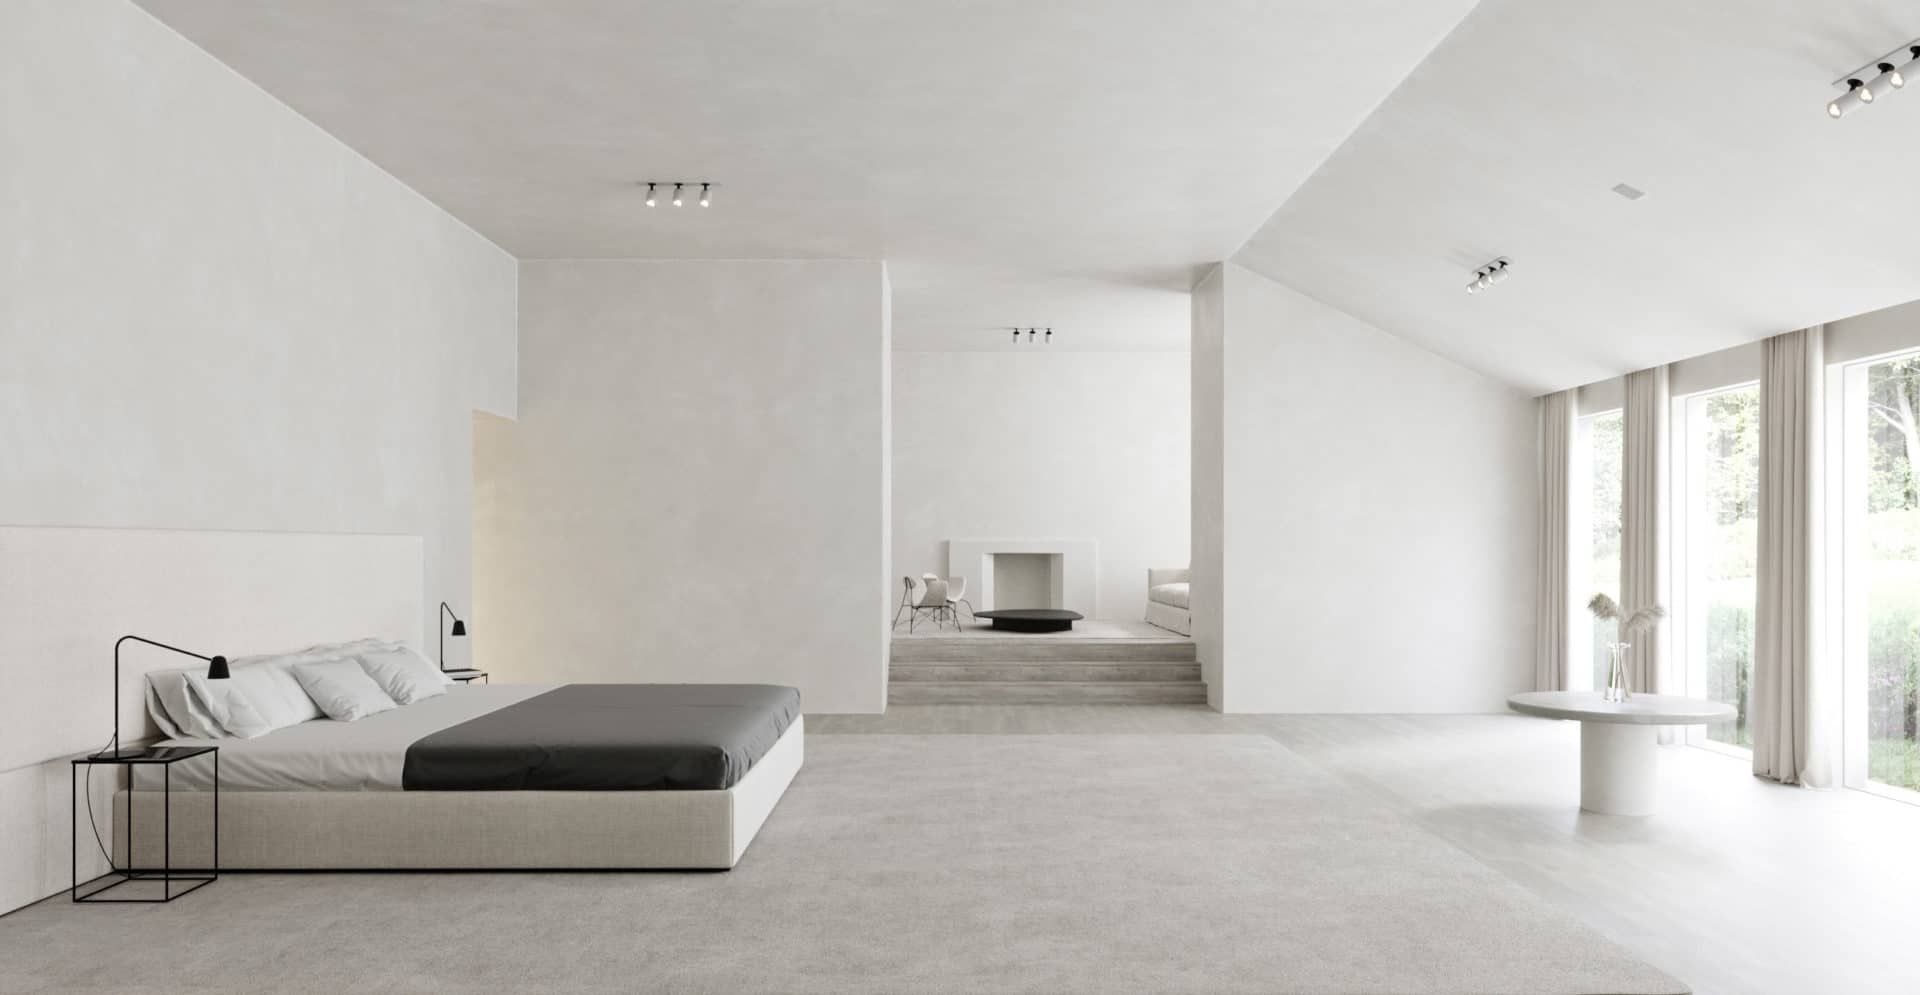 A Project Of The Minimalist Home Kim Kardashian And Kanye West In Hidden Hills California In 2020 Minimalist Home Minimalism Interior Kim And Kanye House